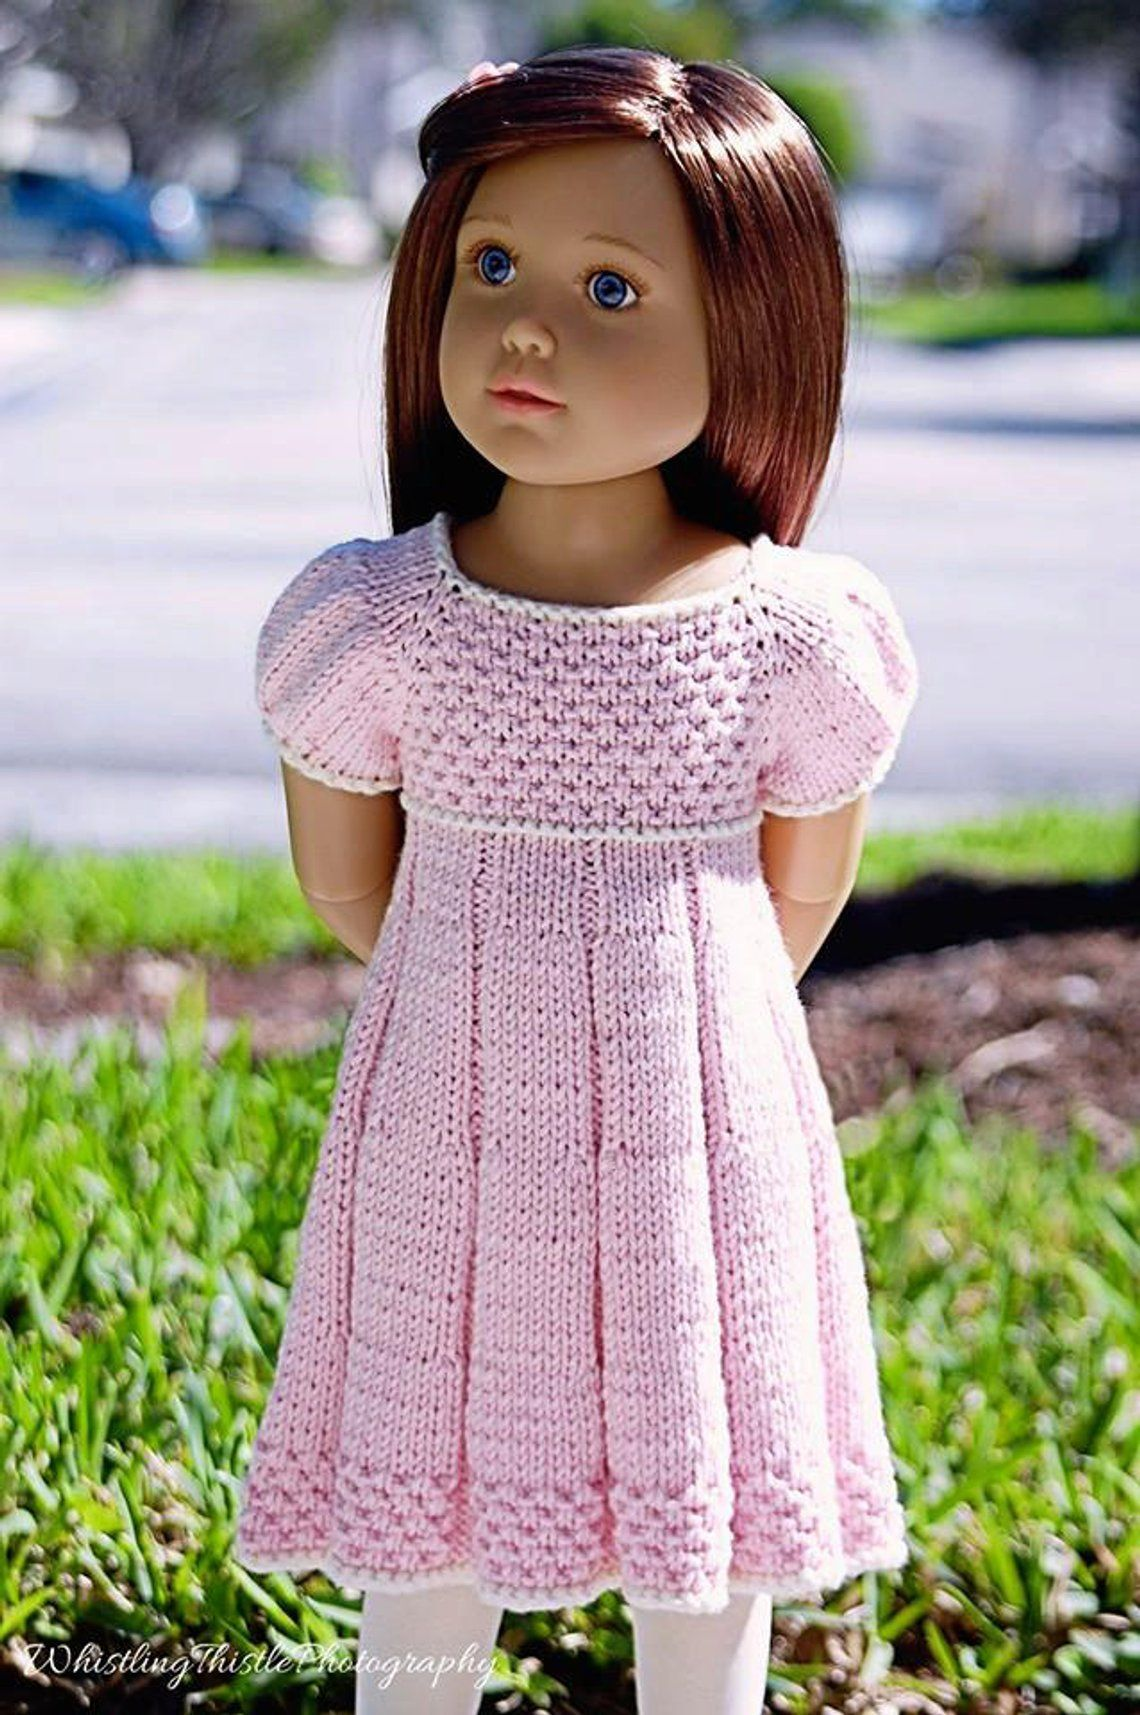 PLEATED SUMMER slim 18 inch doll Kidz n Cats DRESS Knitting pattern (# 042slim) #dollaccessories PLEATED SUMMER slim 18 inch doll Kidz n Cats DRESS Knitting | Etsy #dolldresspatterns